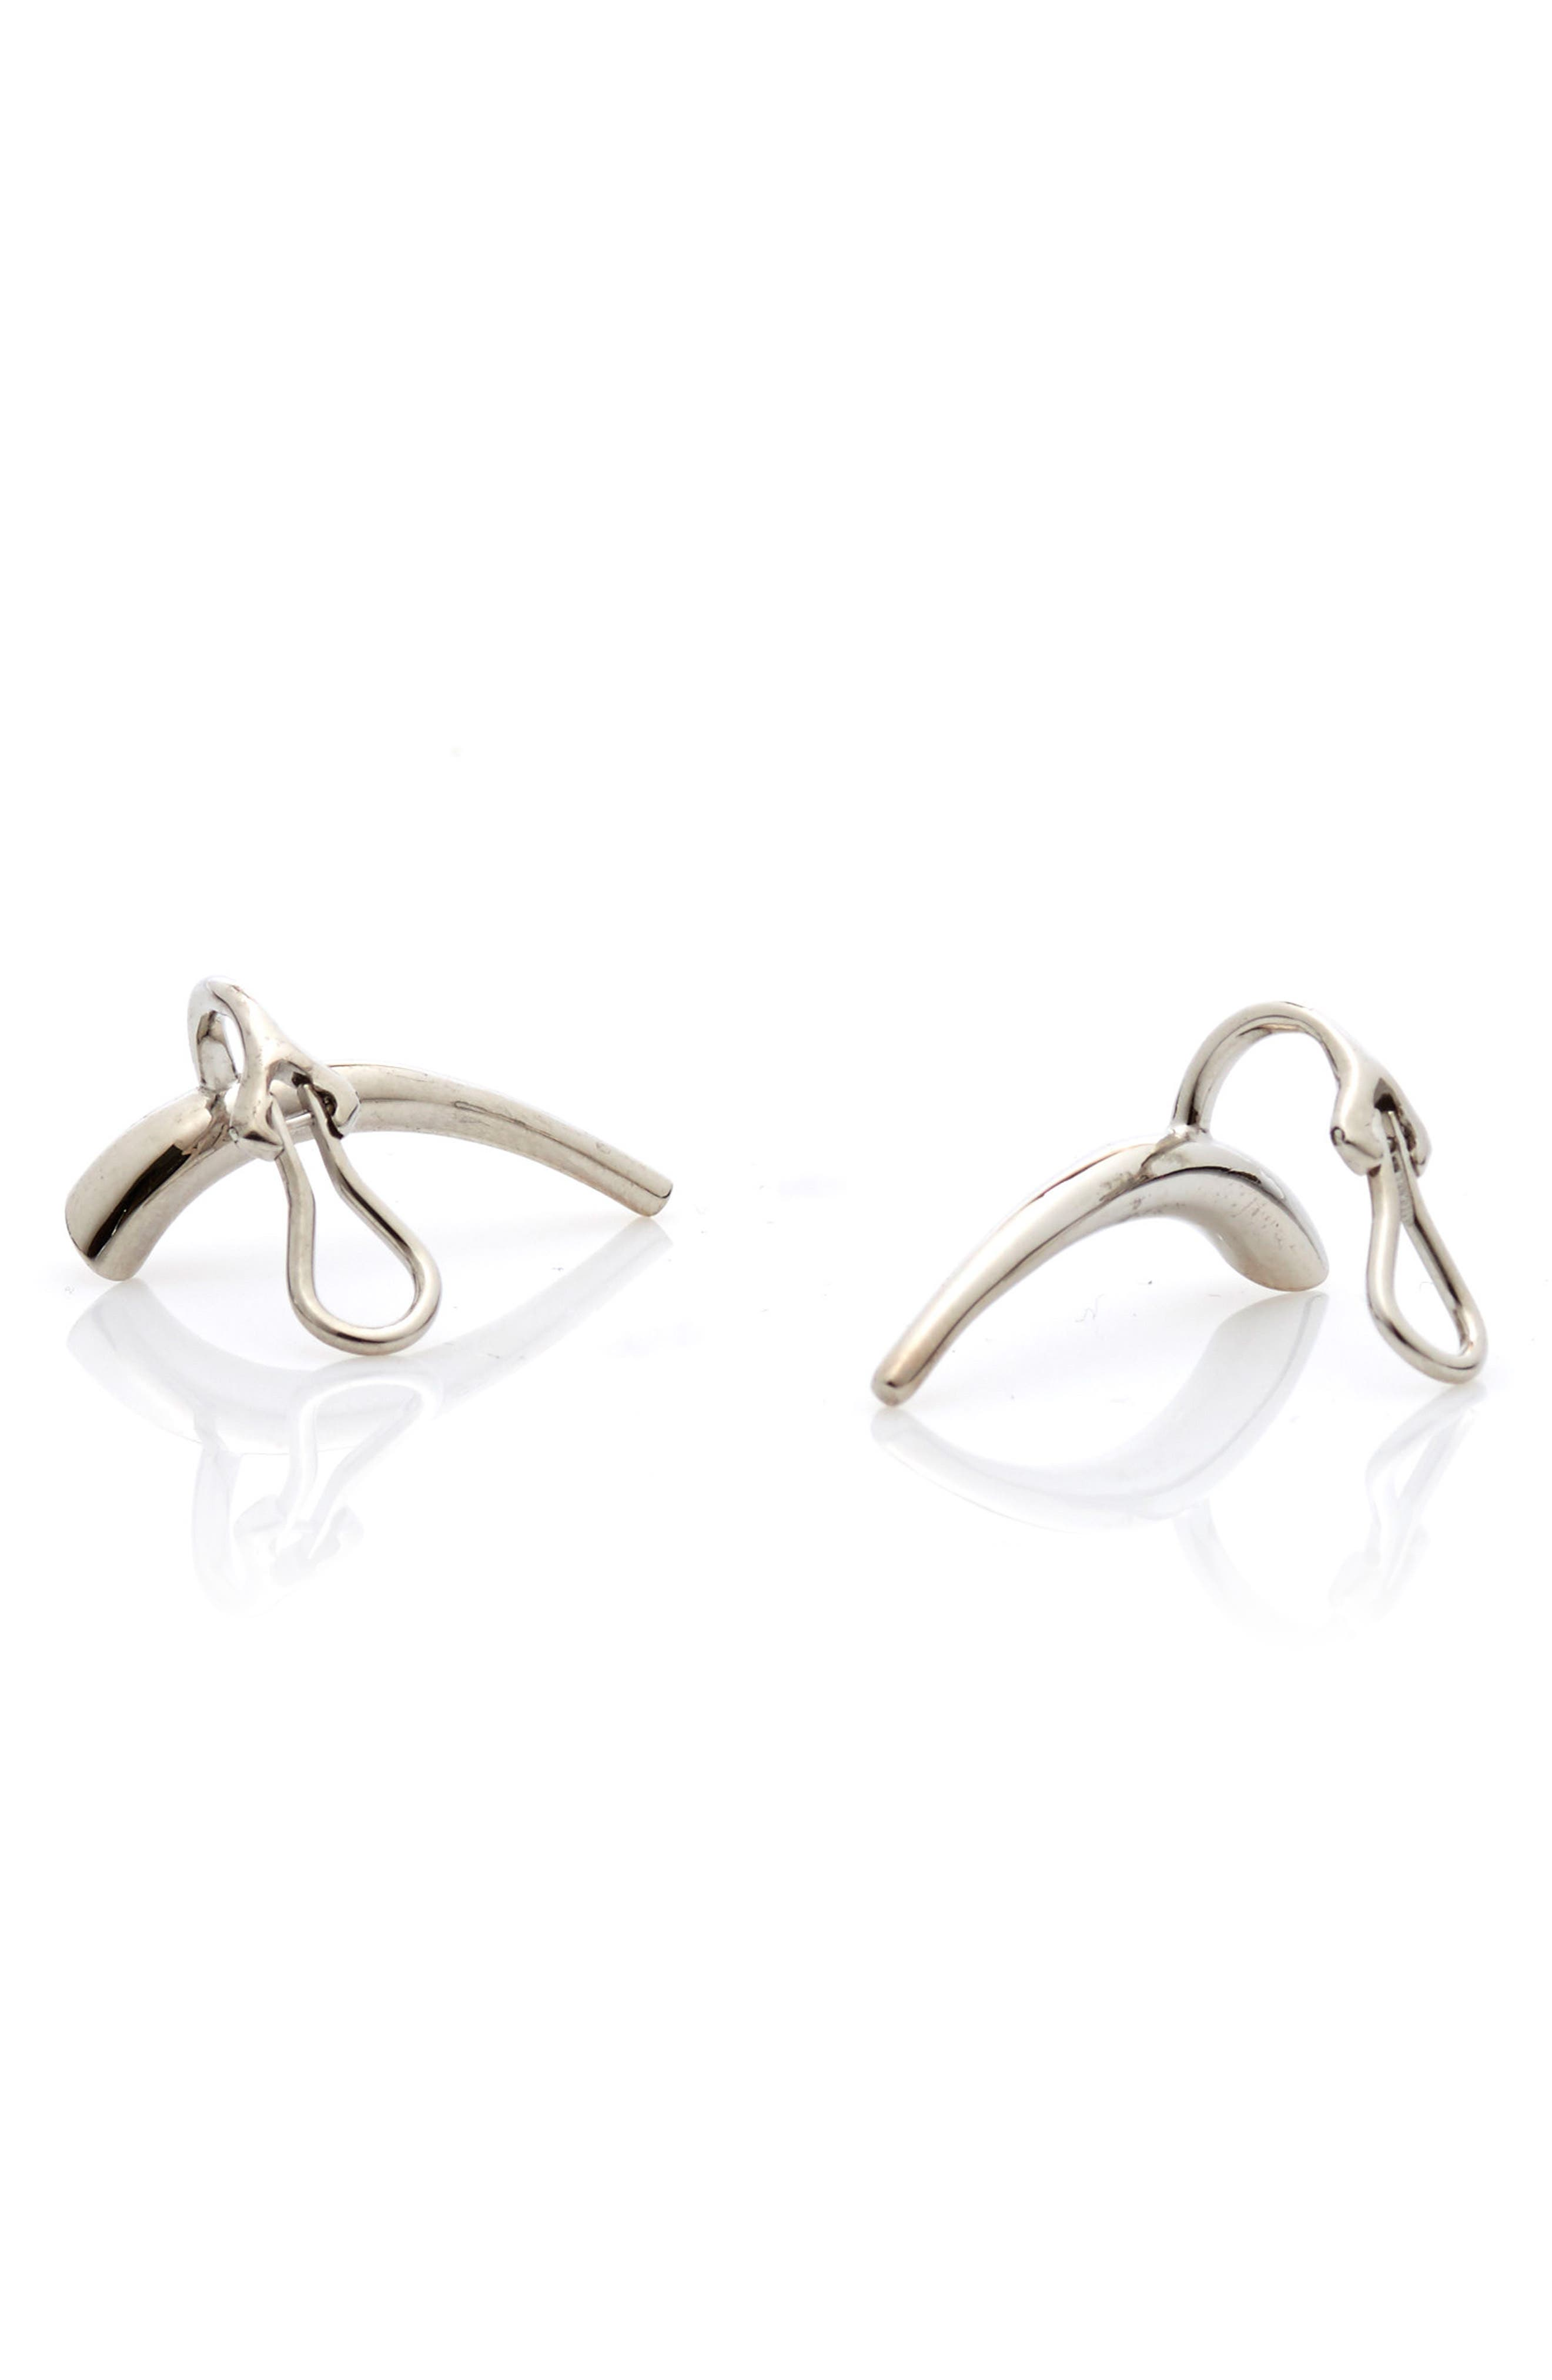 Helix Silver Ear Cuffs,                             Main thumbnail 1, color,                             Silver